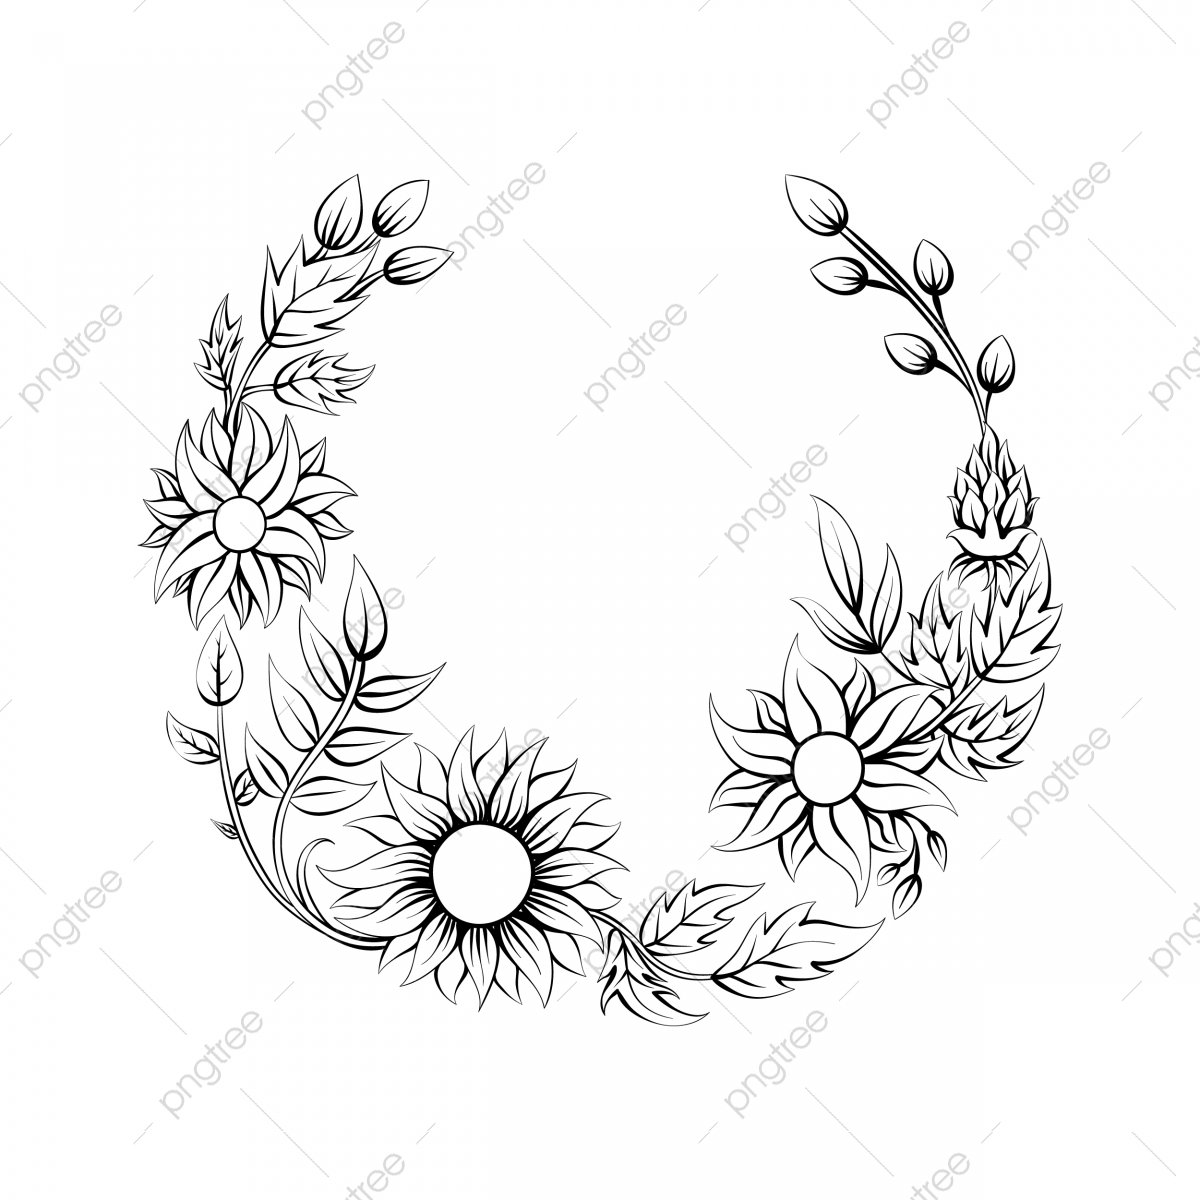 Sunflower Floral Frame Tropical Leaf Simple Illustration Art Black Border Png And Vector With Transparent Background For Free Download Easy drawing guides > easy , plant , tree > how to draw a palm tree. https pngtree com freepng sunflower floral frame tropical leaf simple illustration 5329483 html